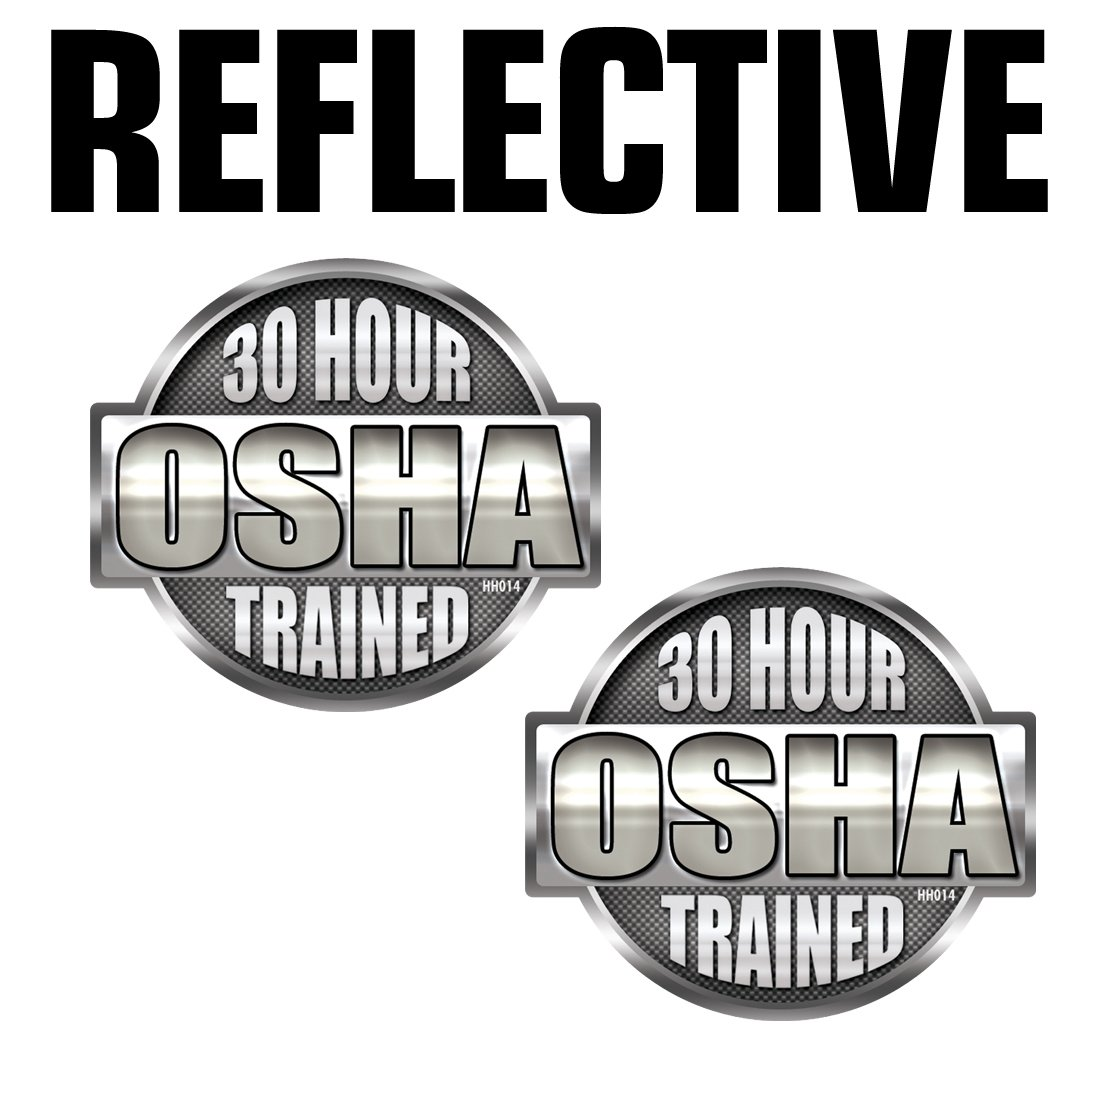 Reflective osha 30 hour hard hat stickers 2 pack hh014 ref safety helmet vinyl decal tool box amazon com